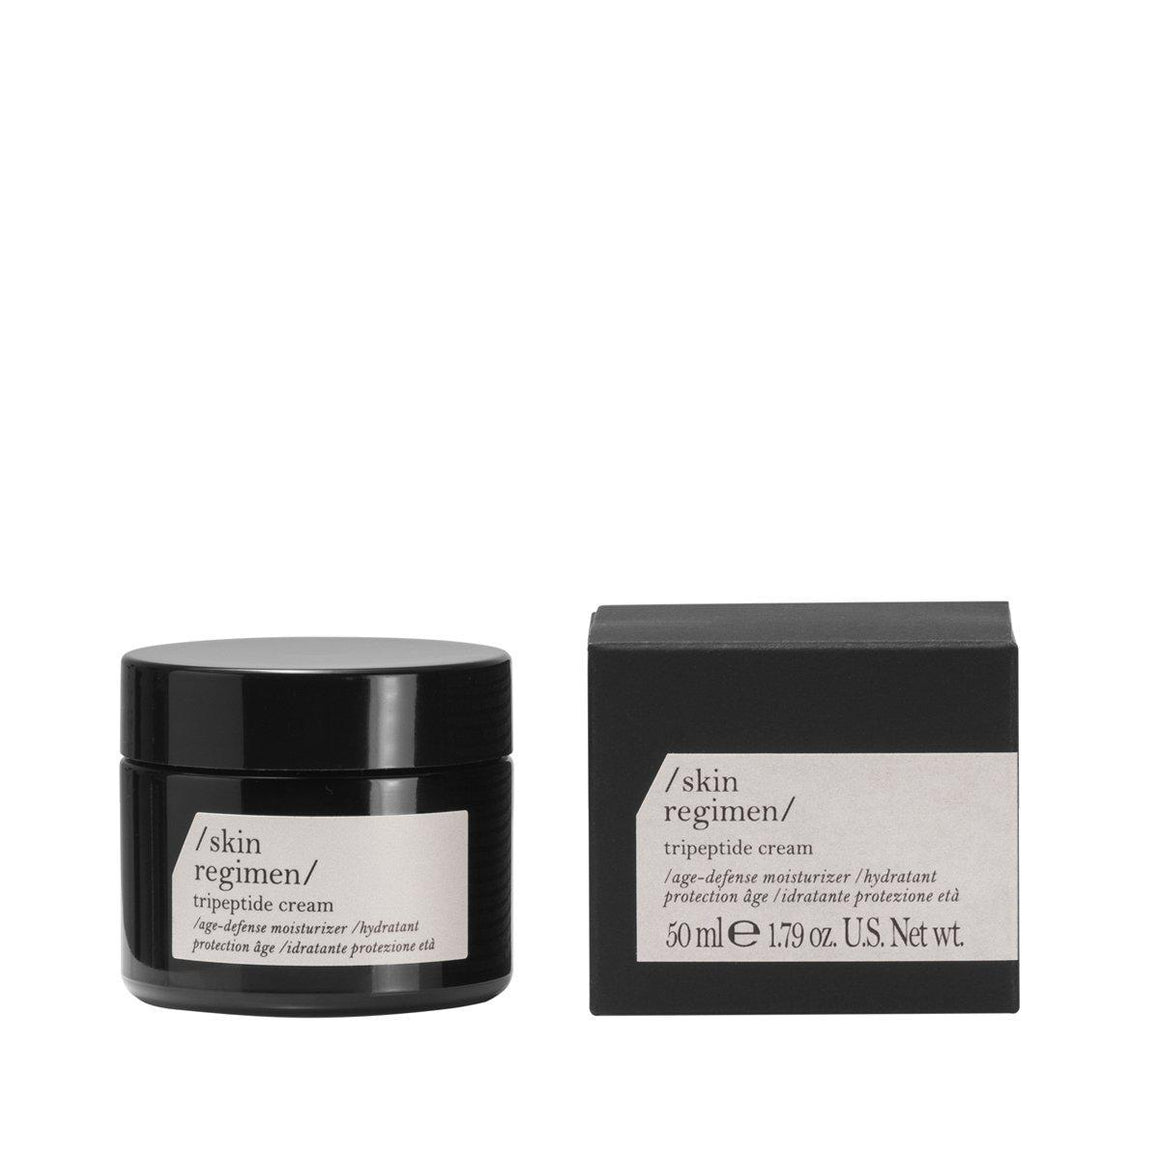 tripeptide cream 50ml Skin regimen